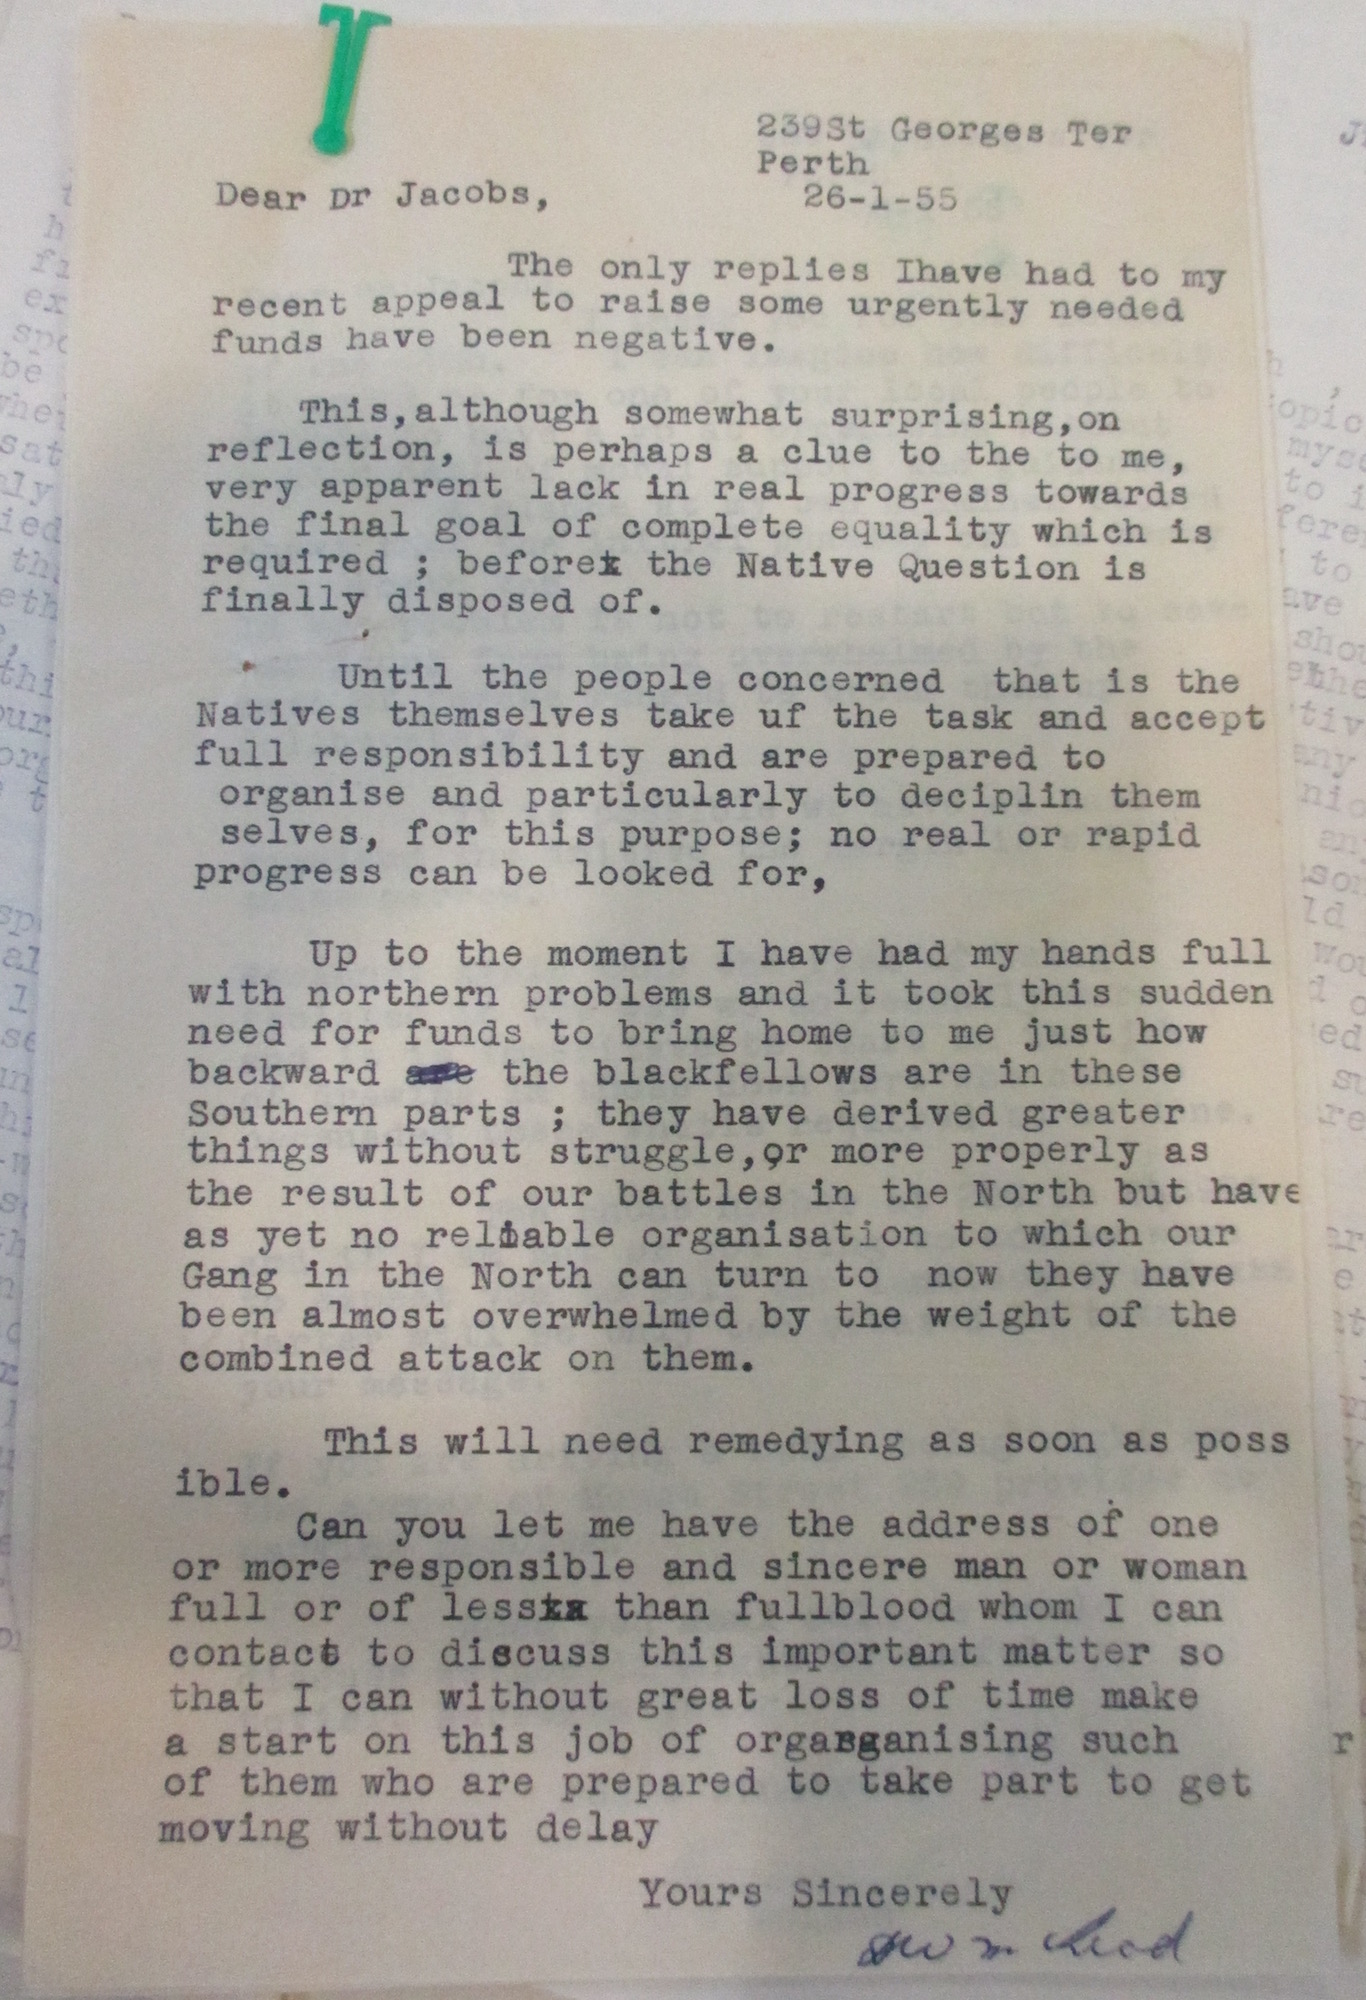 Don McLeod to Alfred Jacobs, 26 January 1955